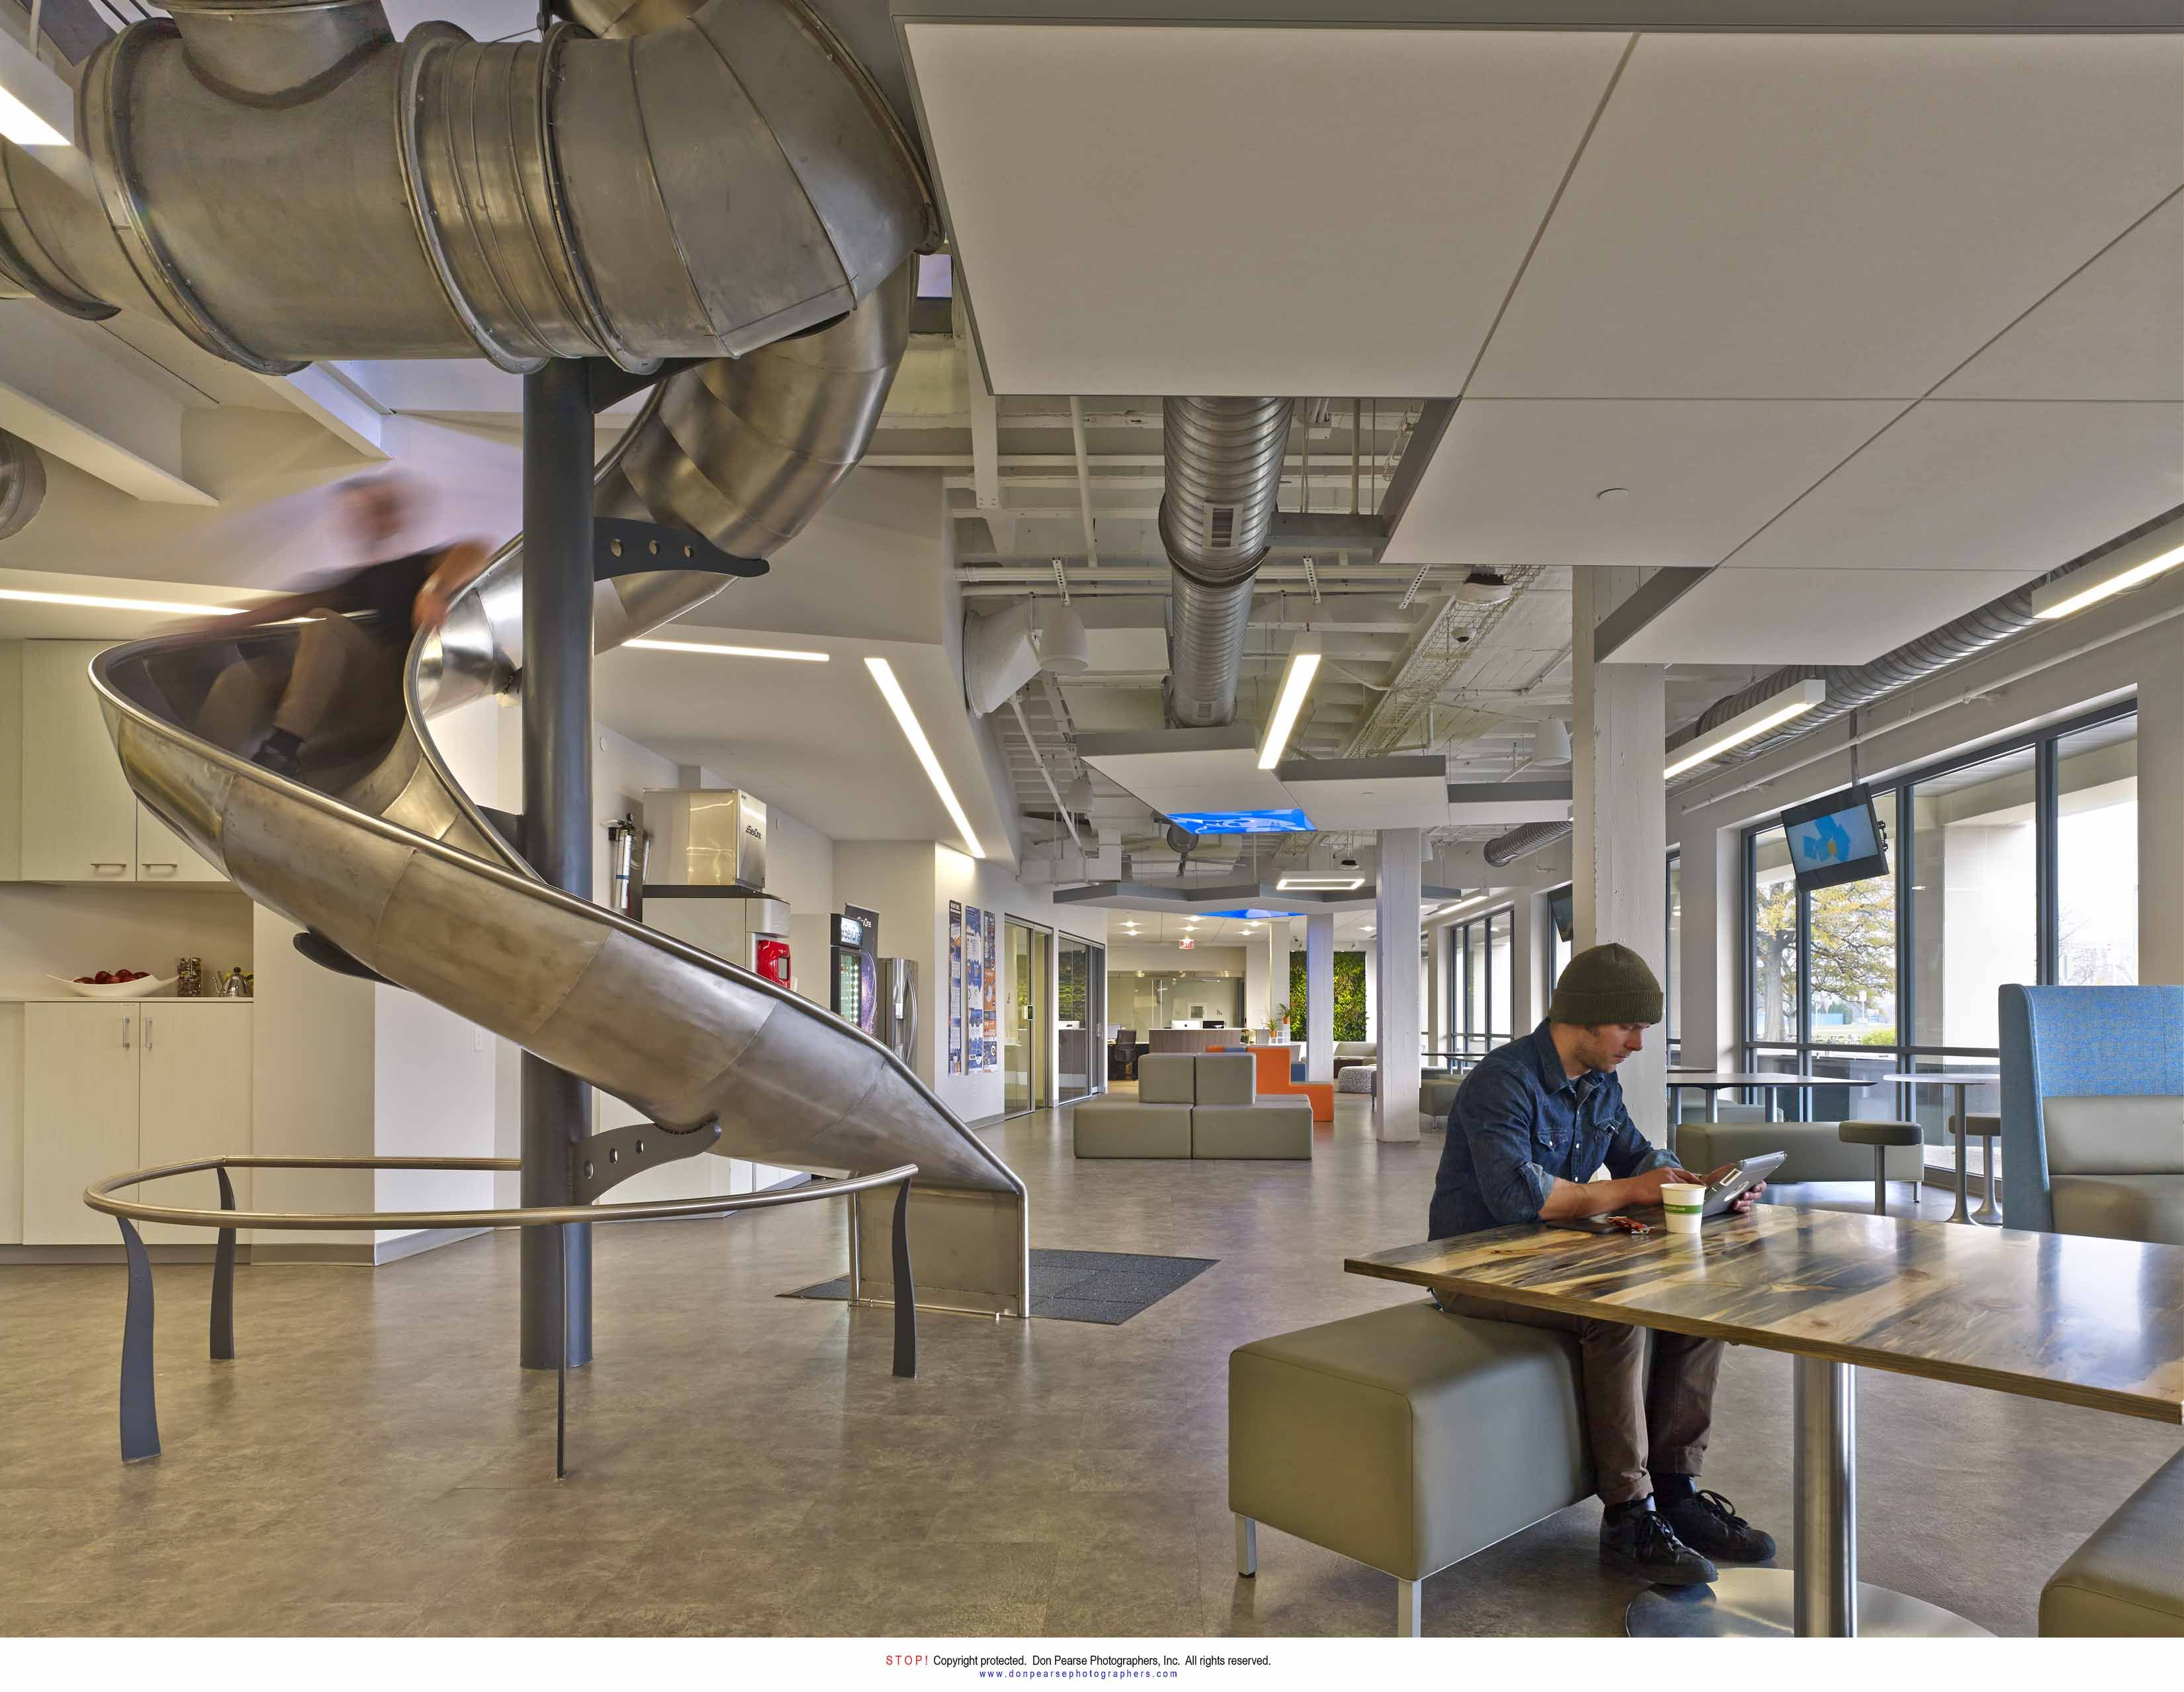 SevOne Delaware Spiral Slide and Work Play Space Design by